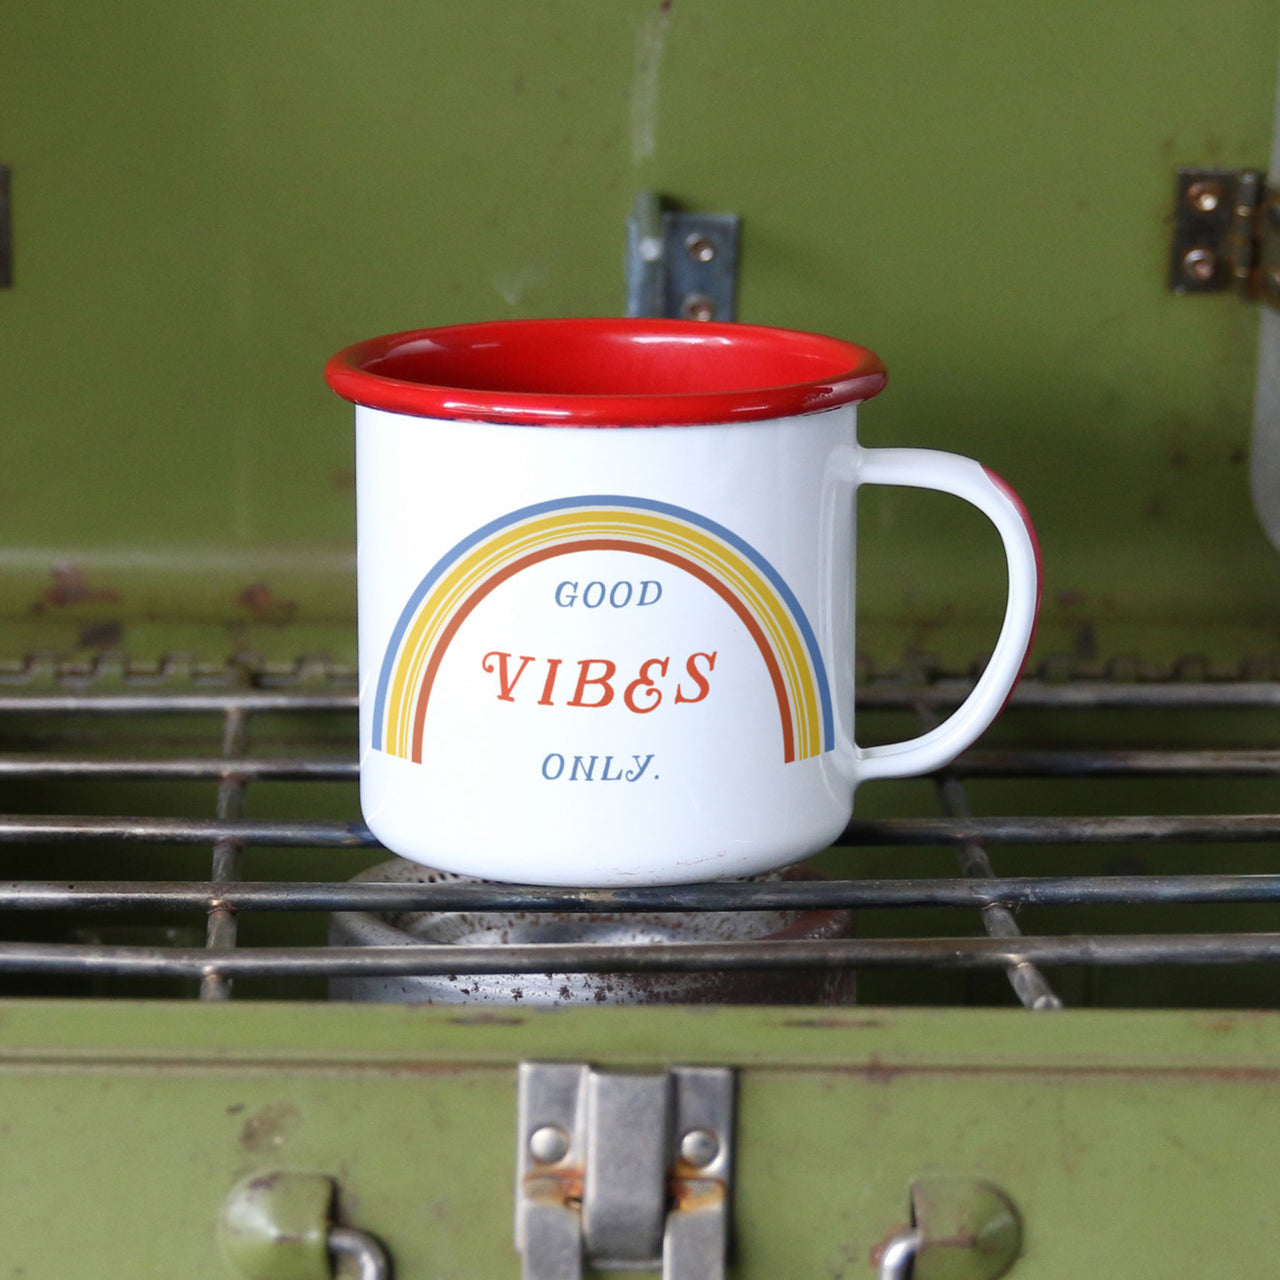 Good Vibes Only Retro 70s Enamel Camping Mug